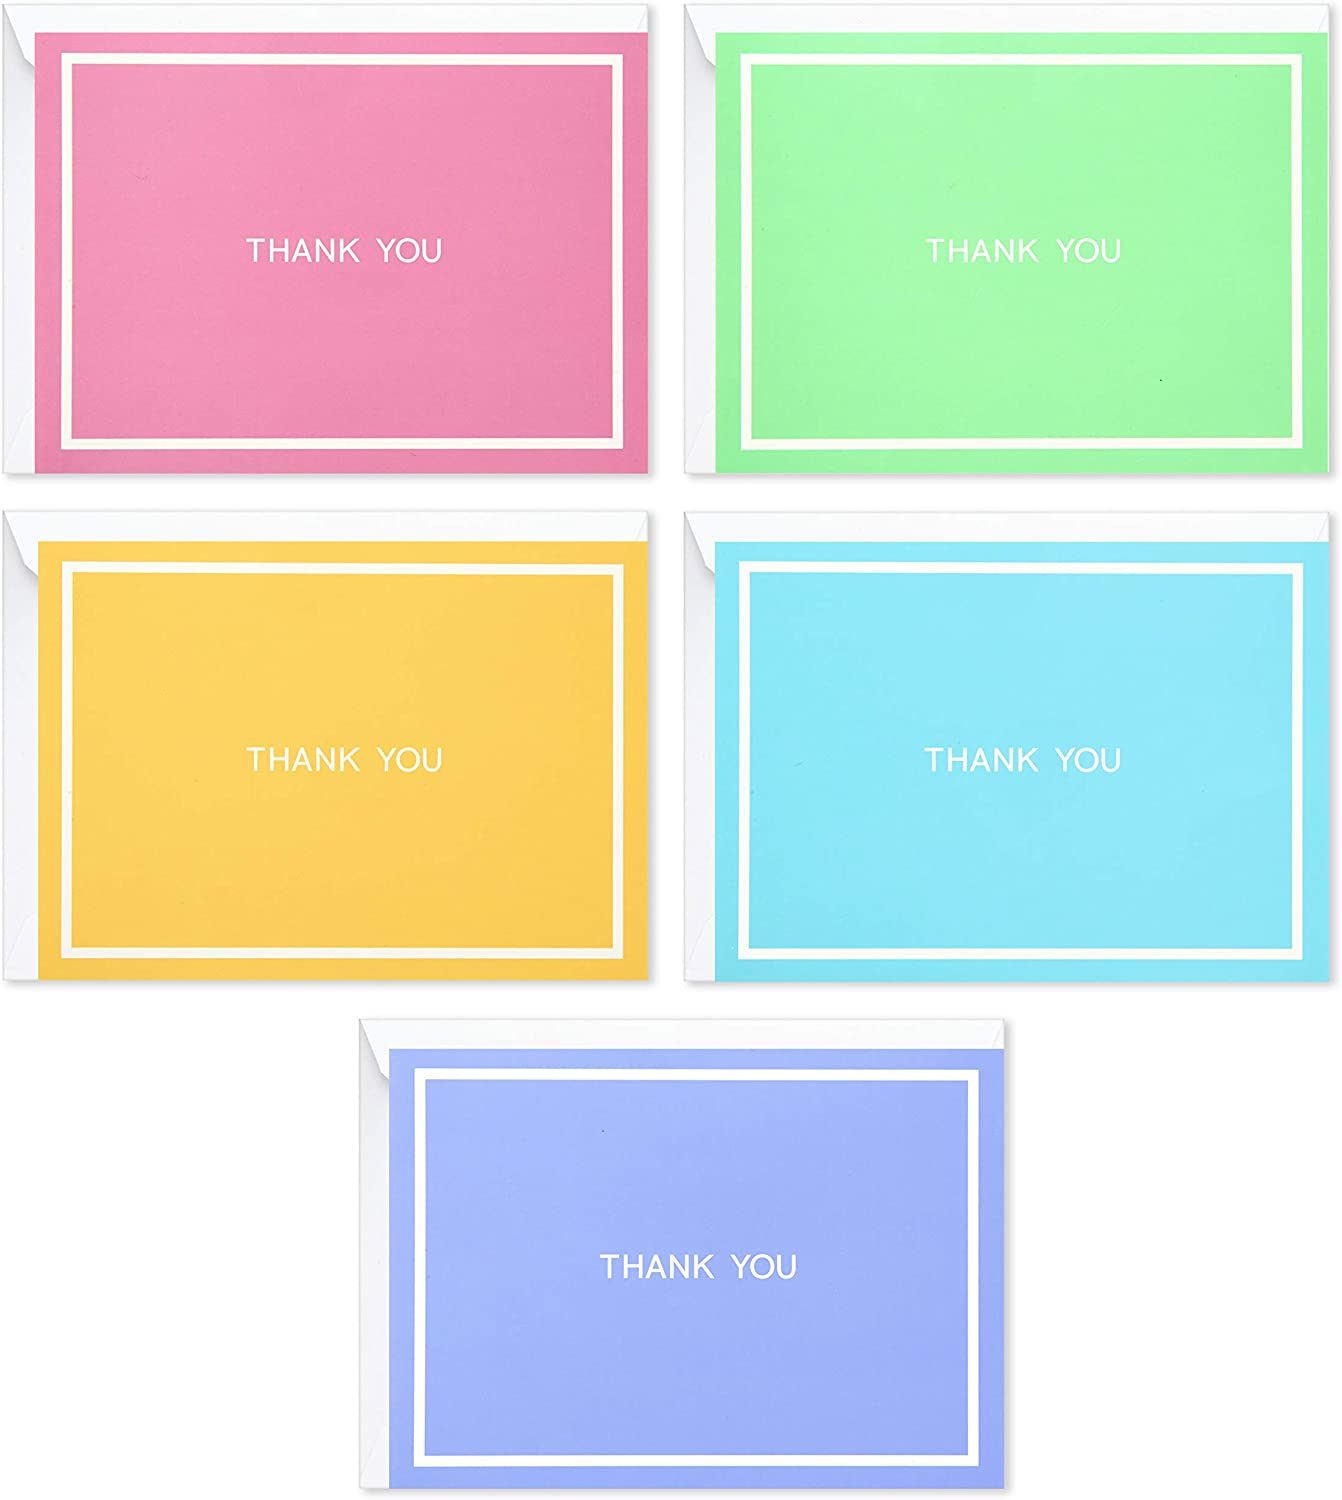 Hallmark Baby Shower Thank You Cards Assortment, Pastel Solids (50 Cards for Weddings, Bridal Showers, All Occasion)